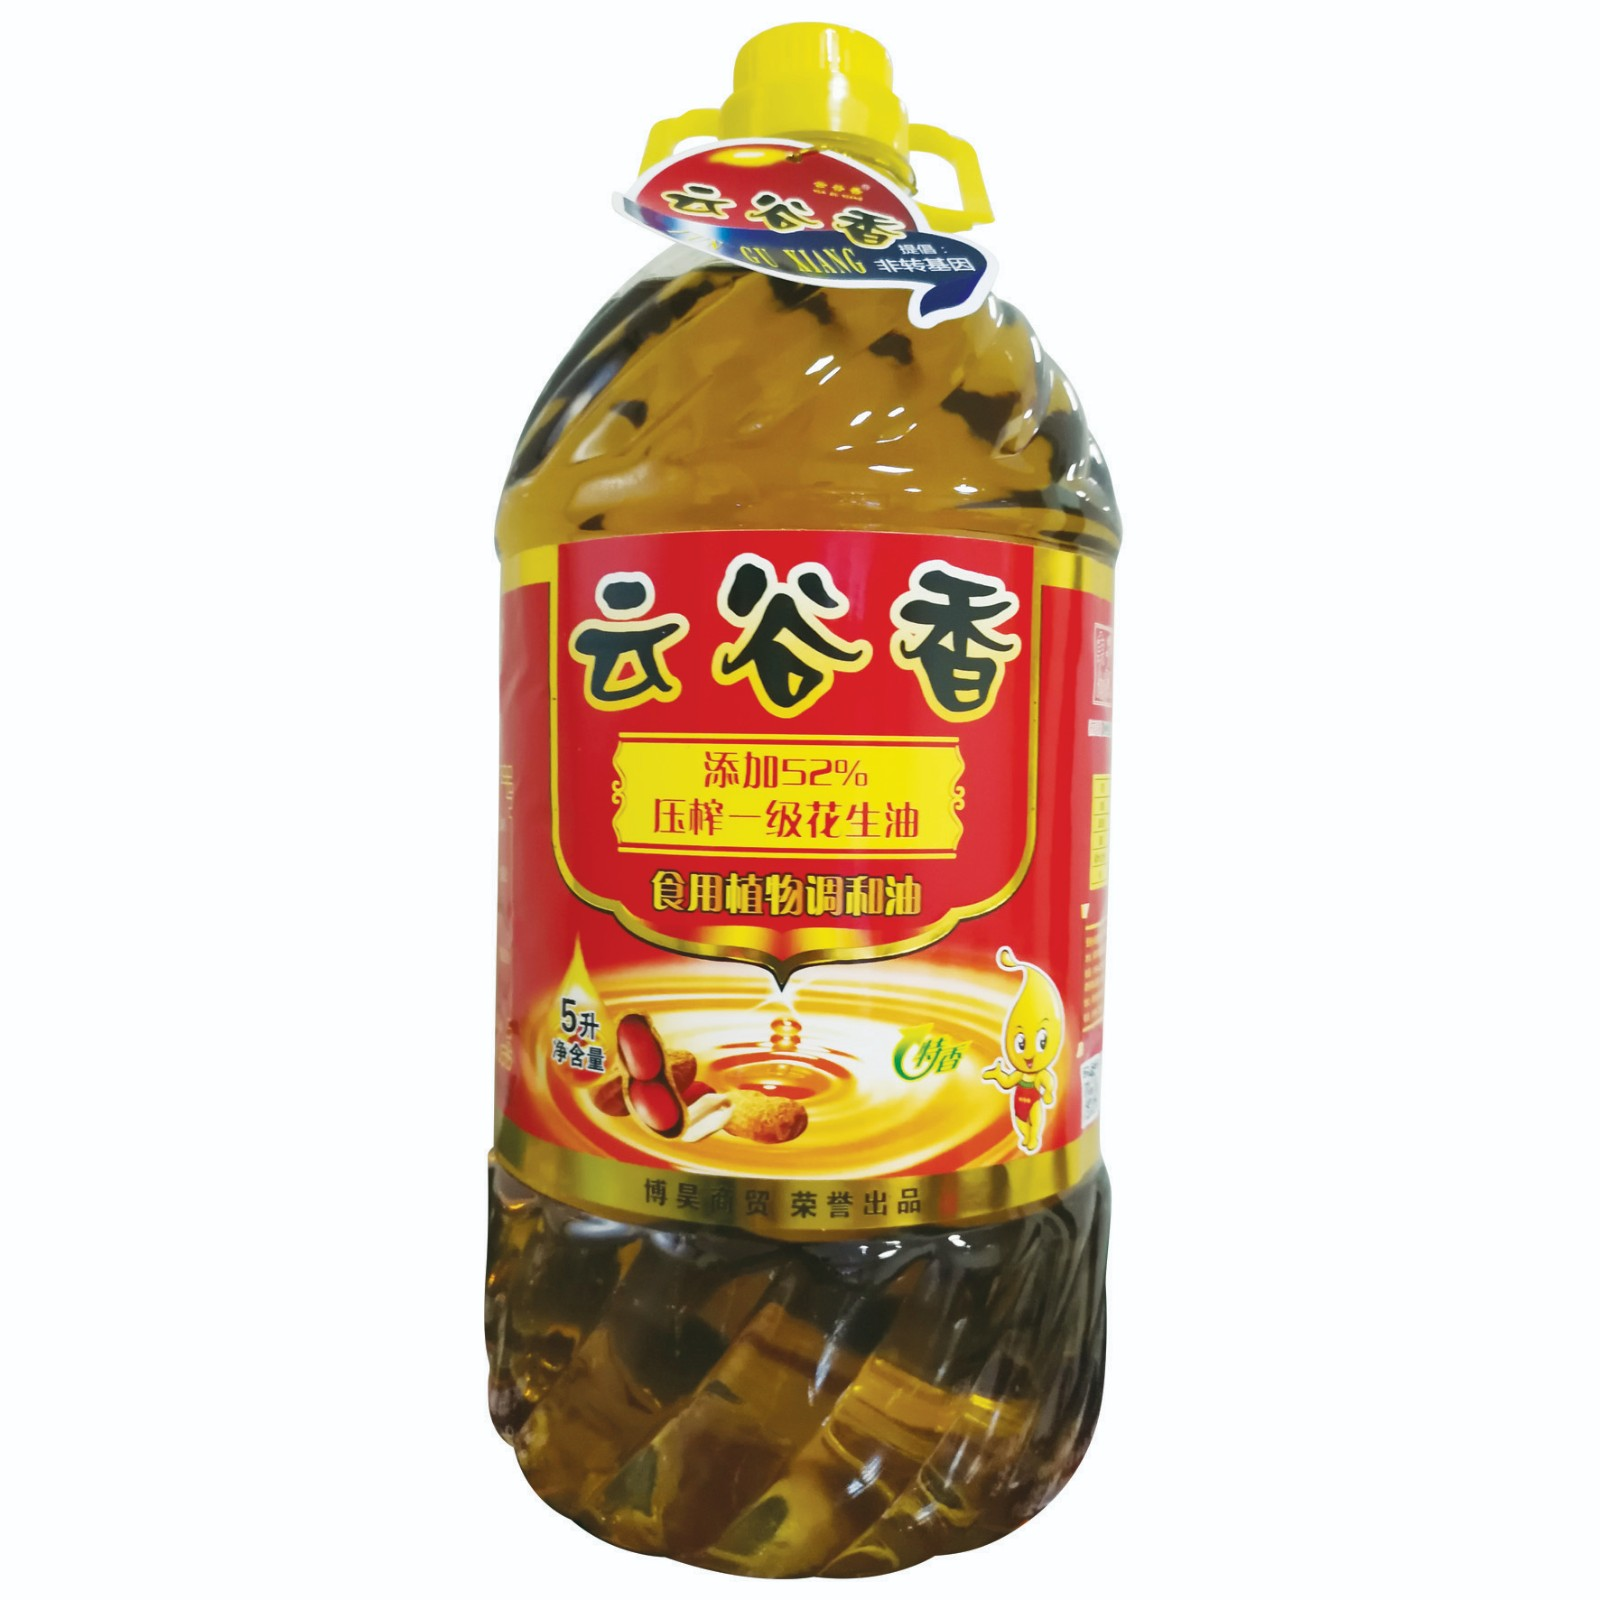 5 liters of yunguxiang with 52% pressed grade I peanut oil and edible vegetable blend oil